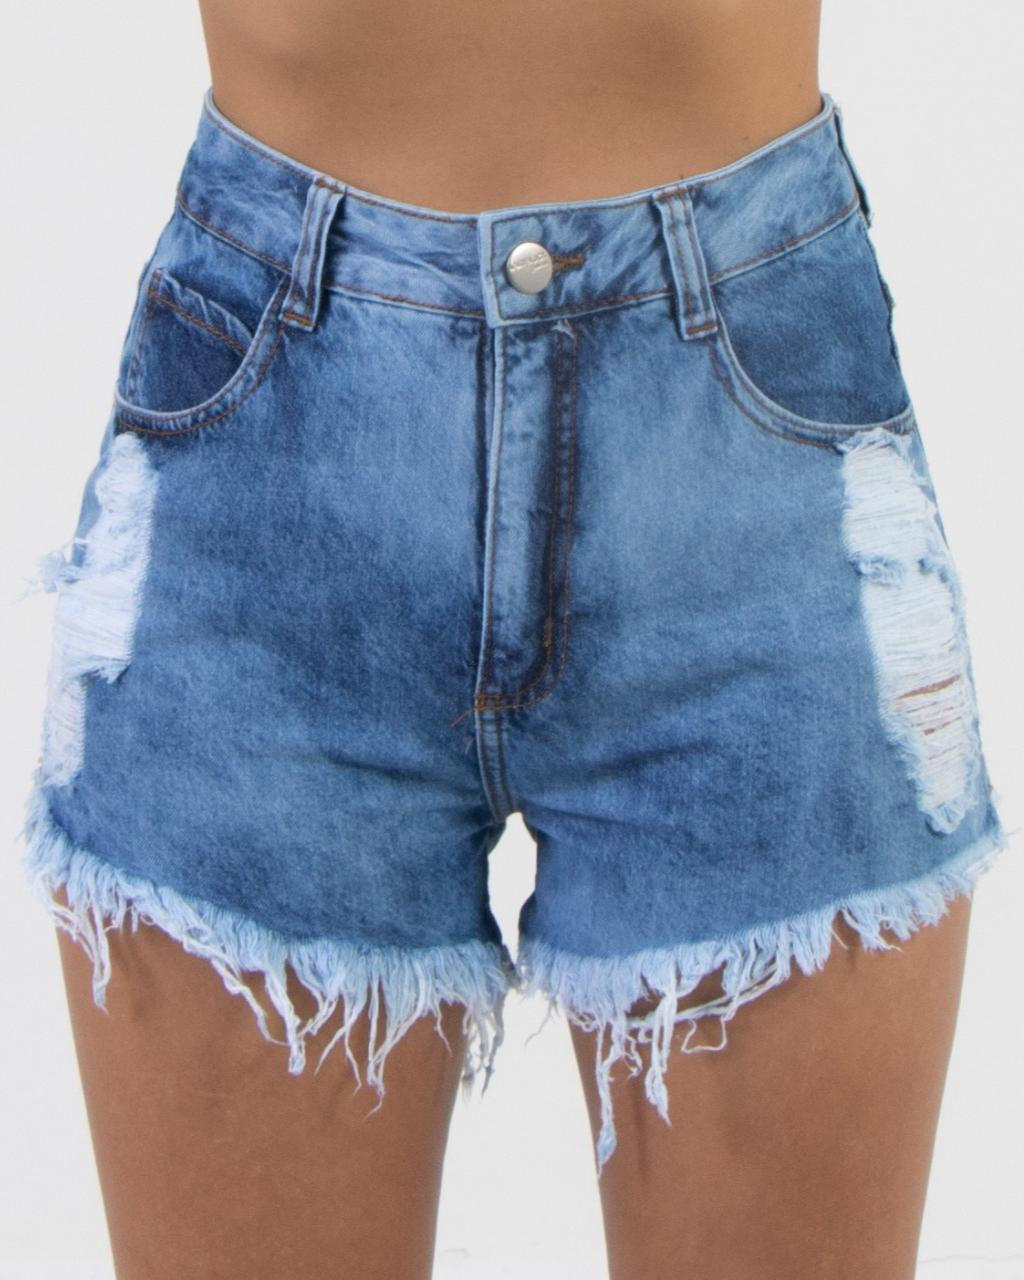 Short Jeans Hot Pants Marmorizado